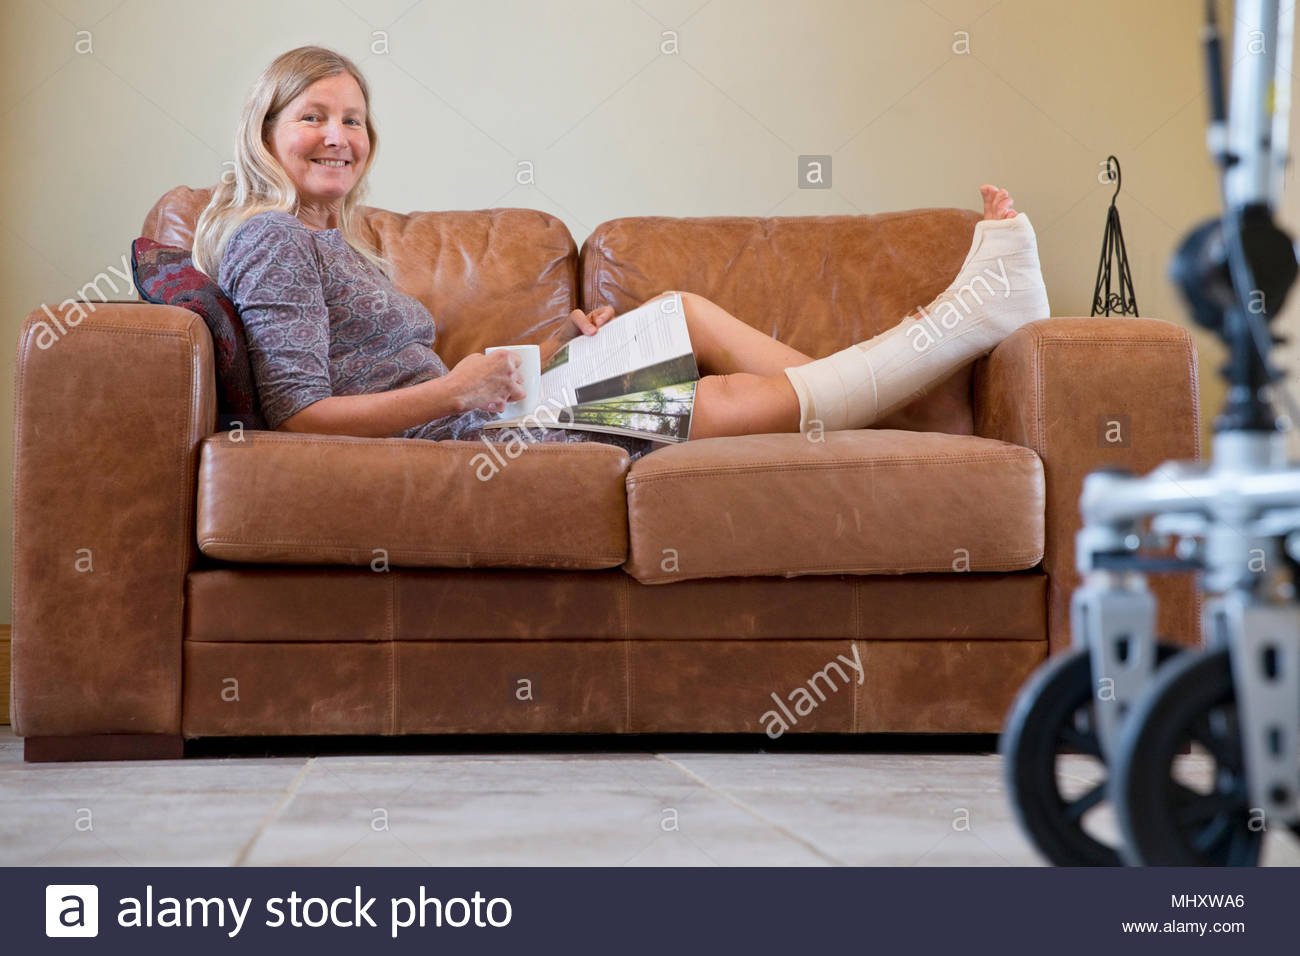 Portrait Of Mature Woman With Leg In Plaster Cast Lying On Sofa At Home - Stock Image